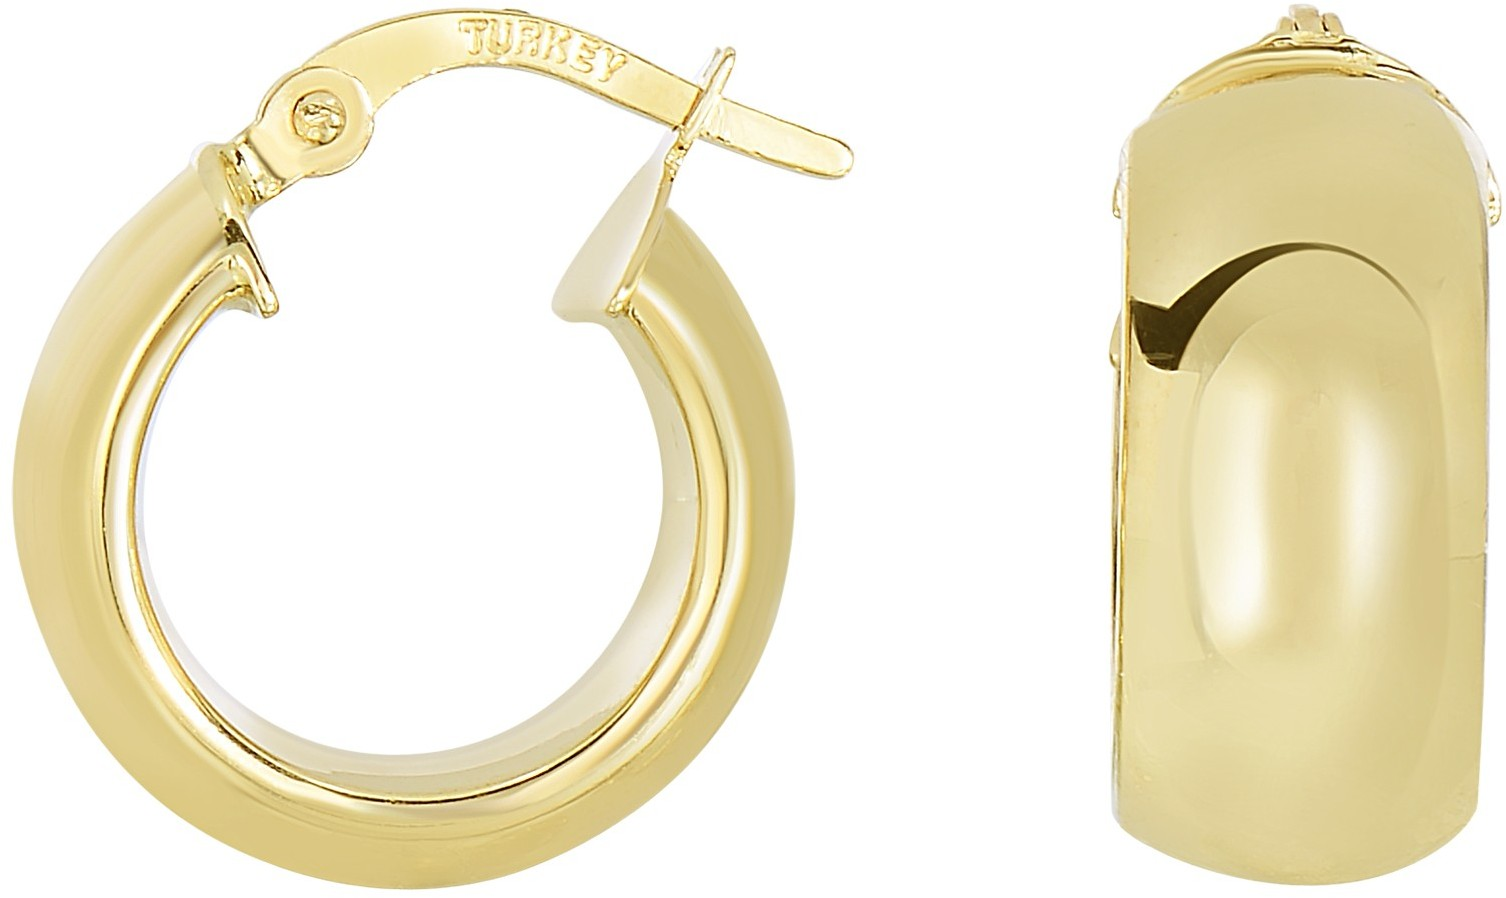 14K Yellow Gold Polished Domed Timeless Hoop Earrings W/ Garnish